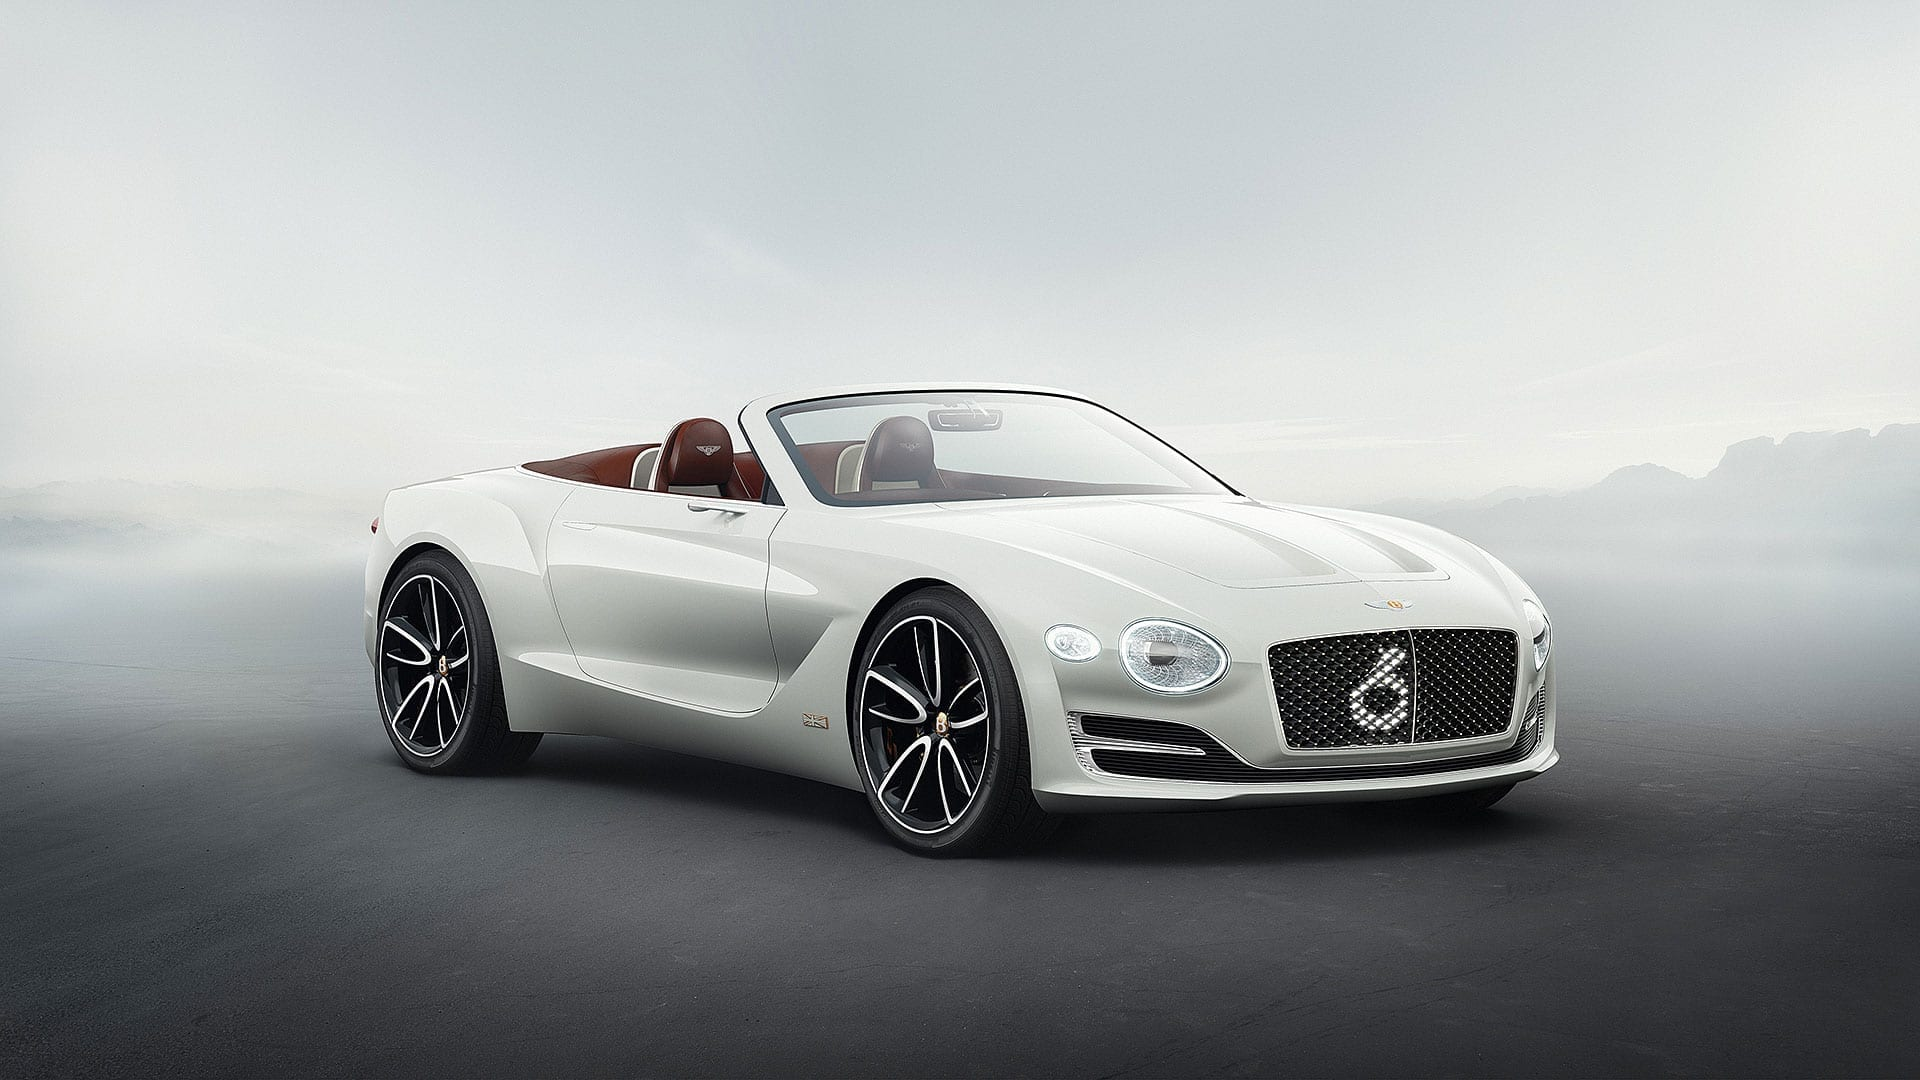 The Future: Concept vehicles or reality? - Bentley EXP 12 Speed 6e concept